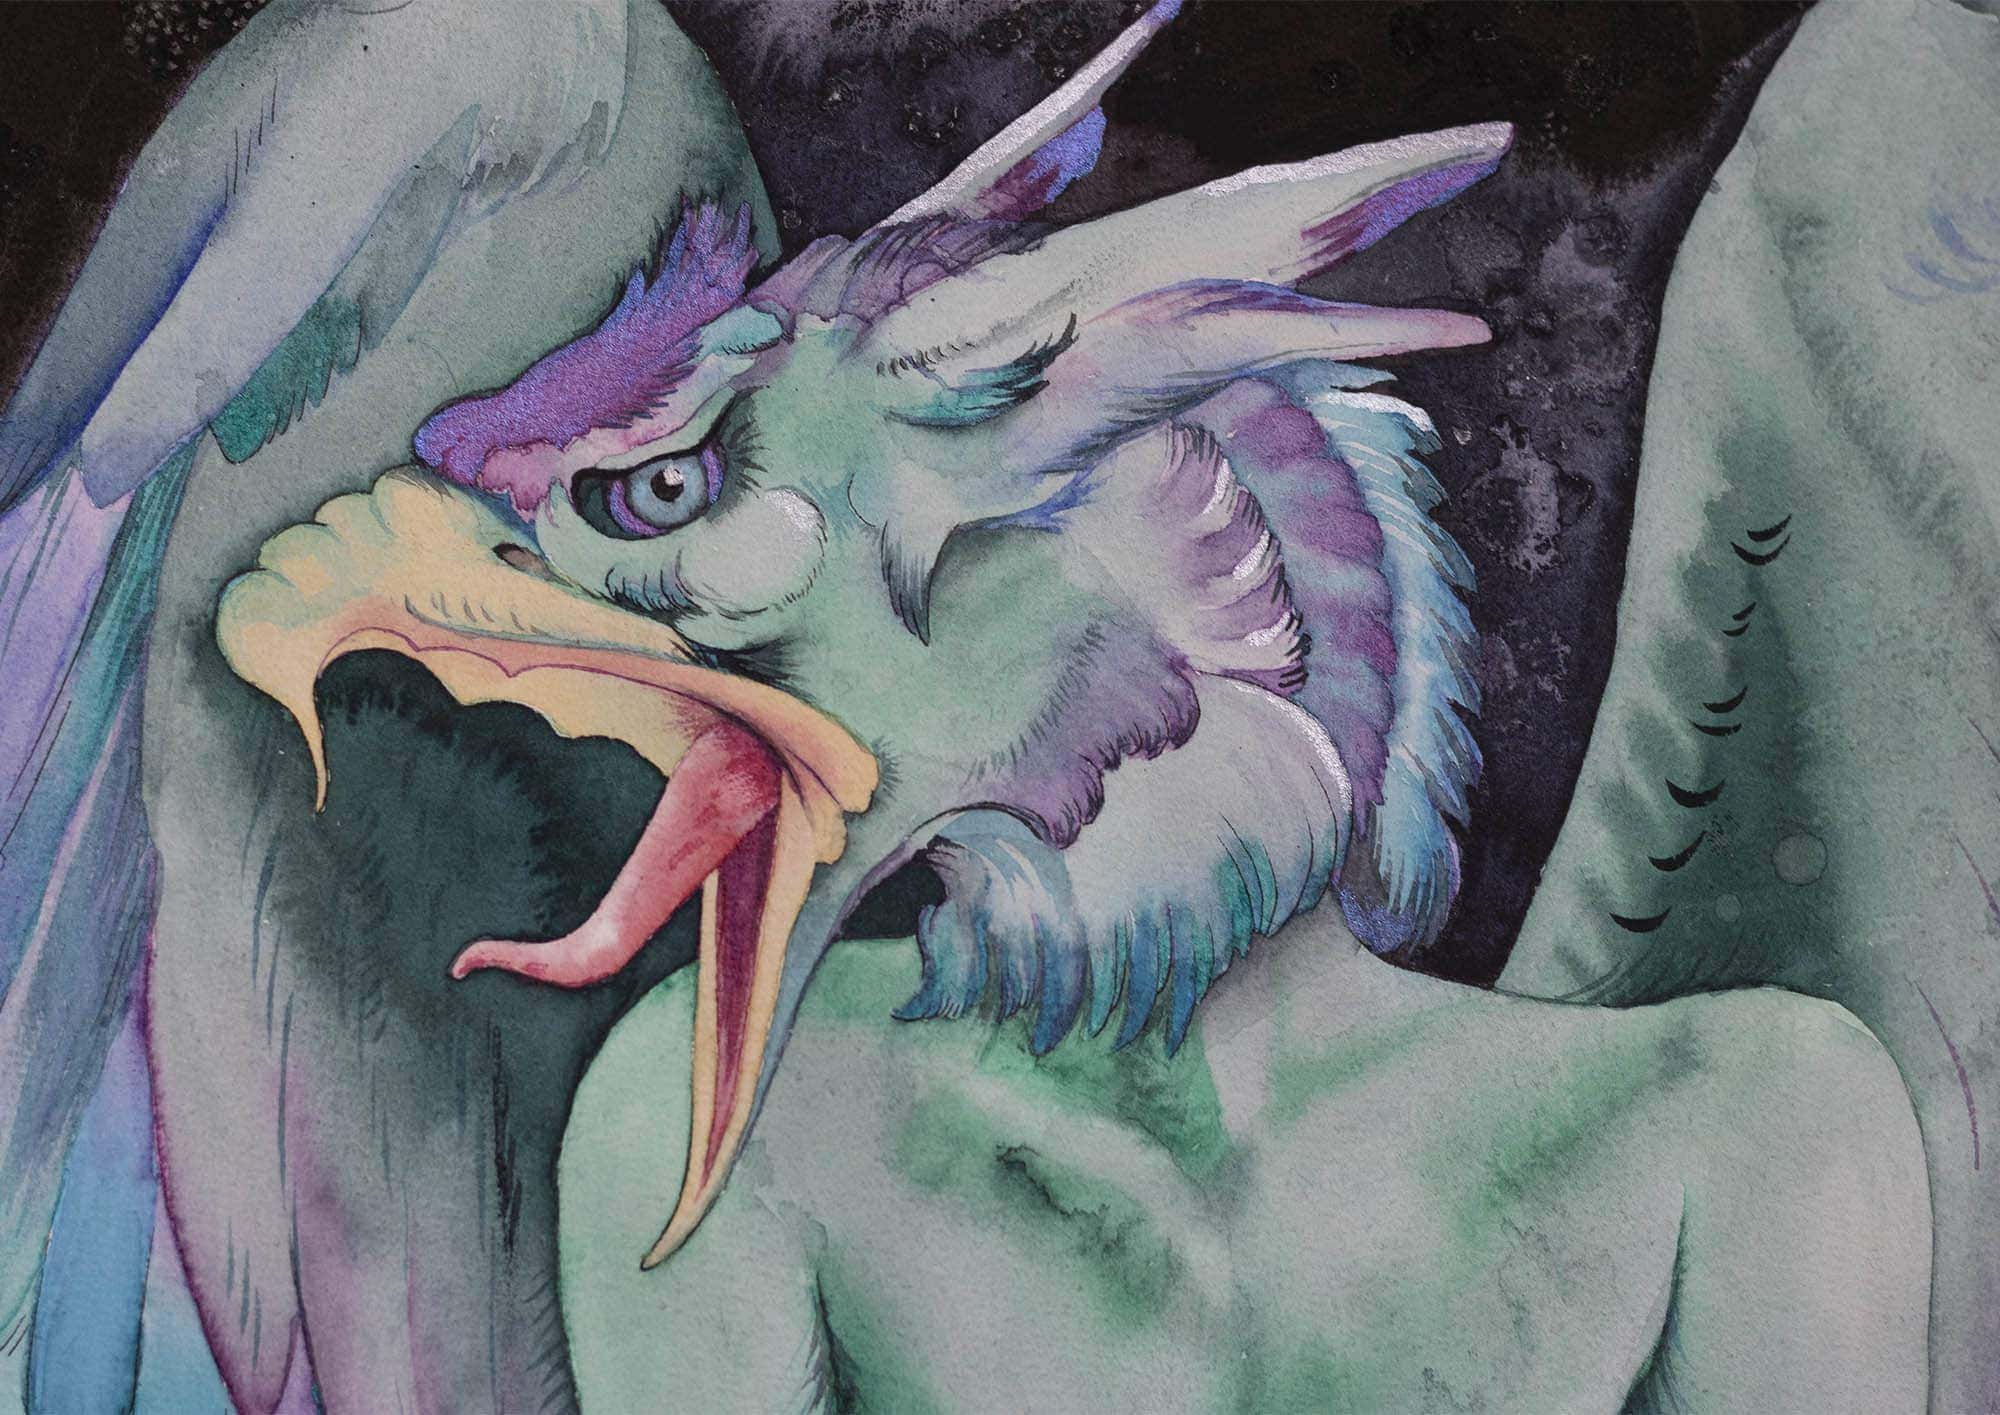 Detail of aquarelle painting of a gargoyle by Jasmina Kirsch